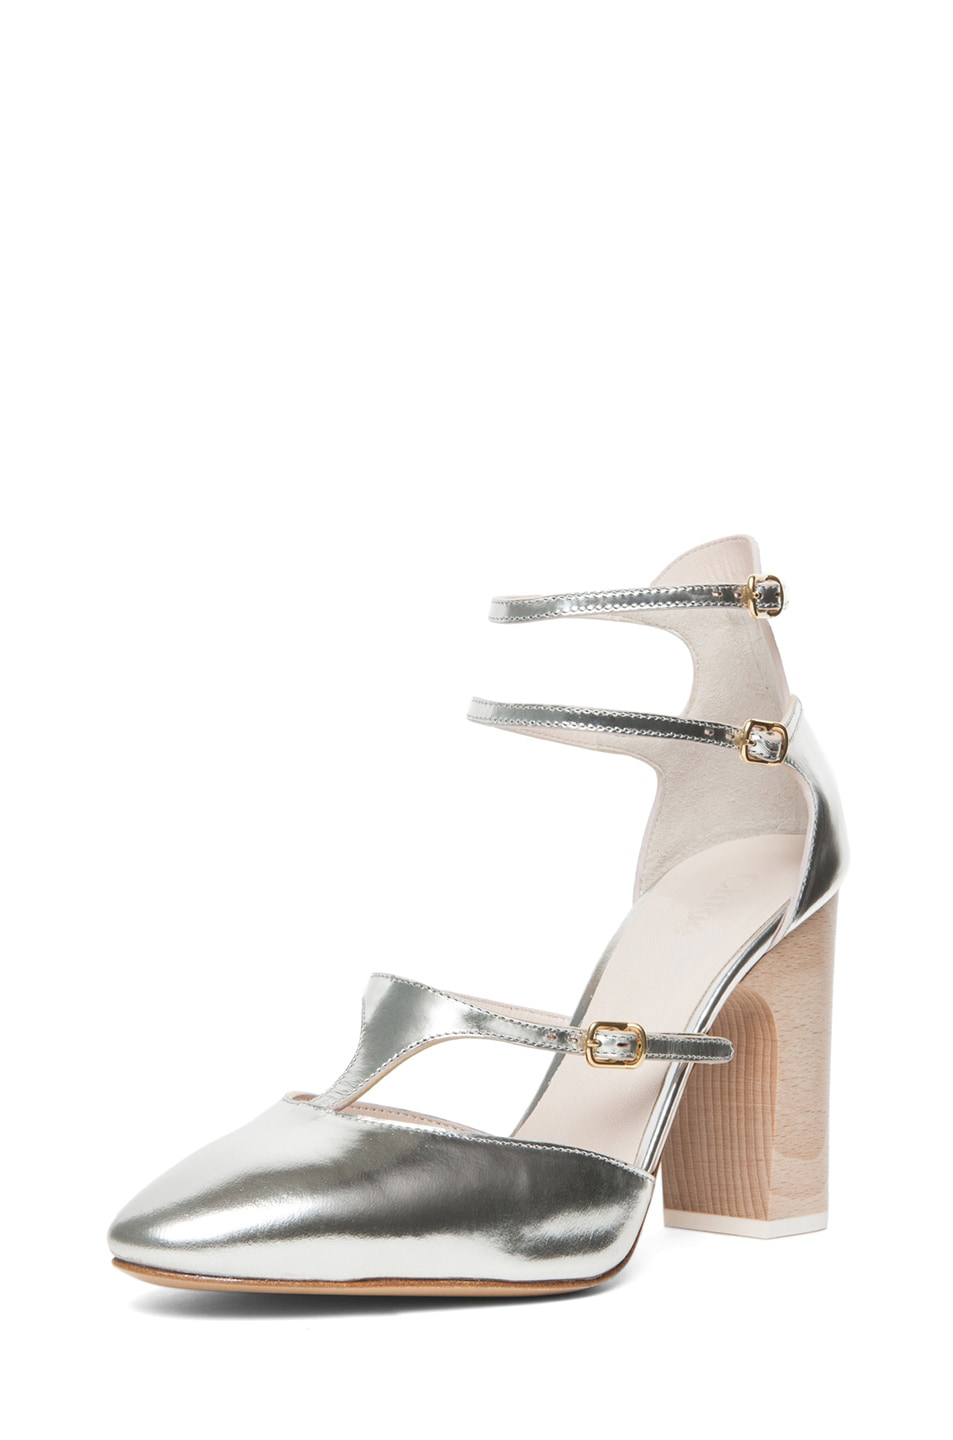 Image 2 of Chloe Runway Heel in Silver